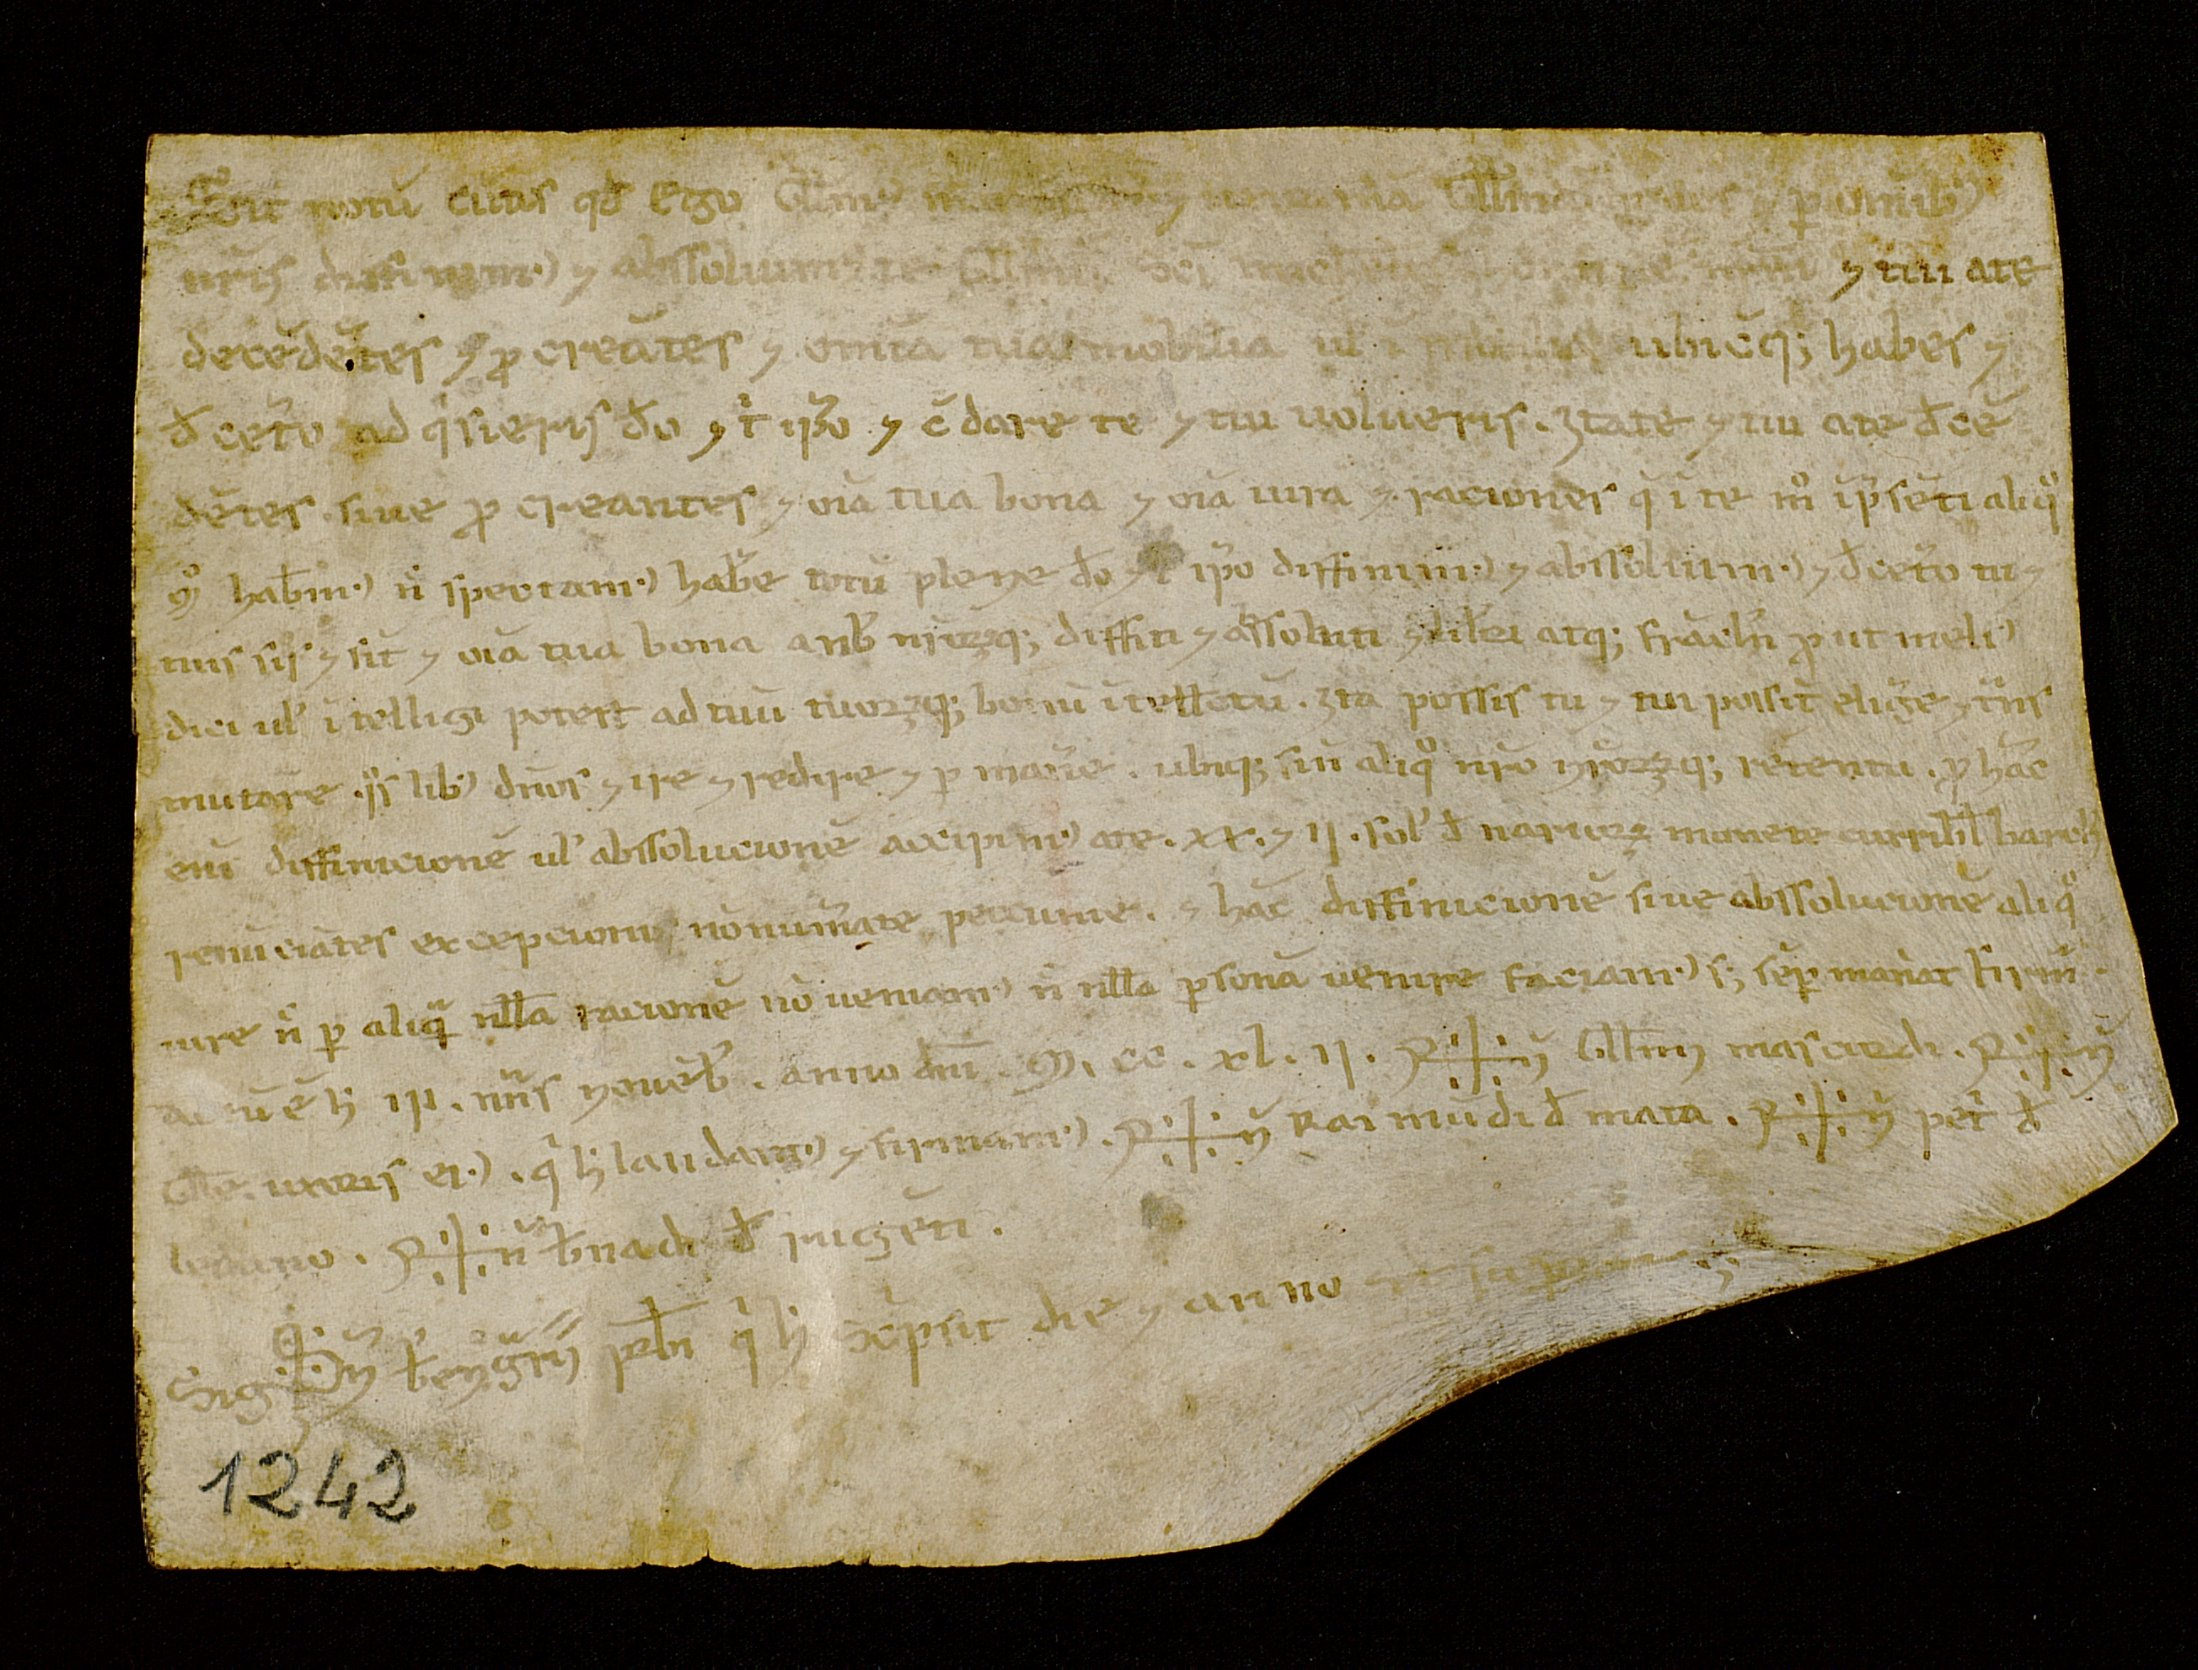 Francisca Serrano Libros Gratis Collection On Manuscript Documents From Spain